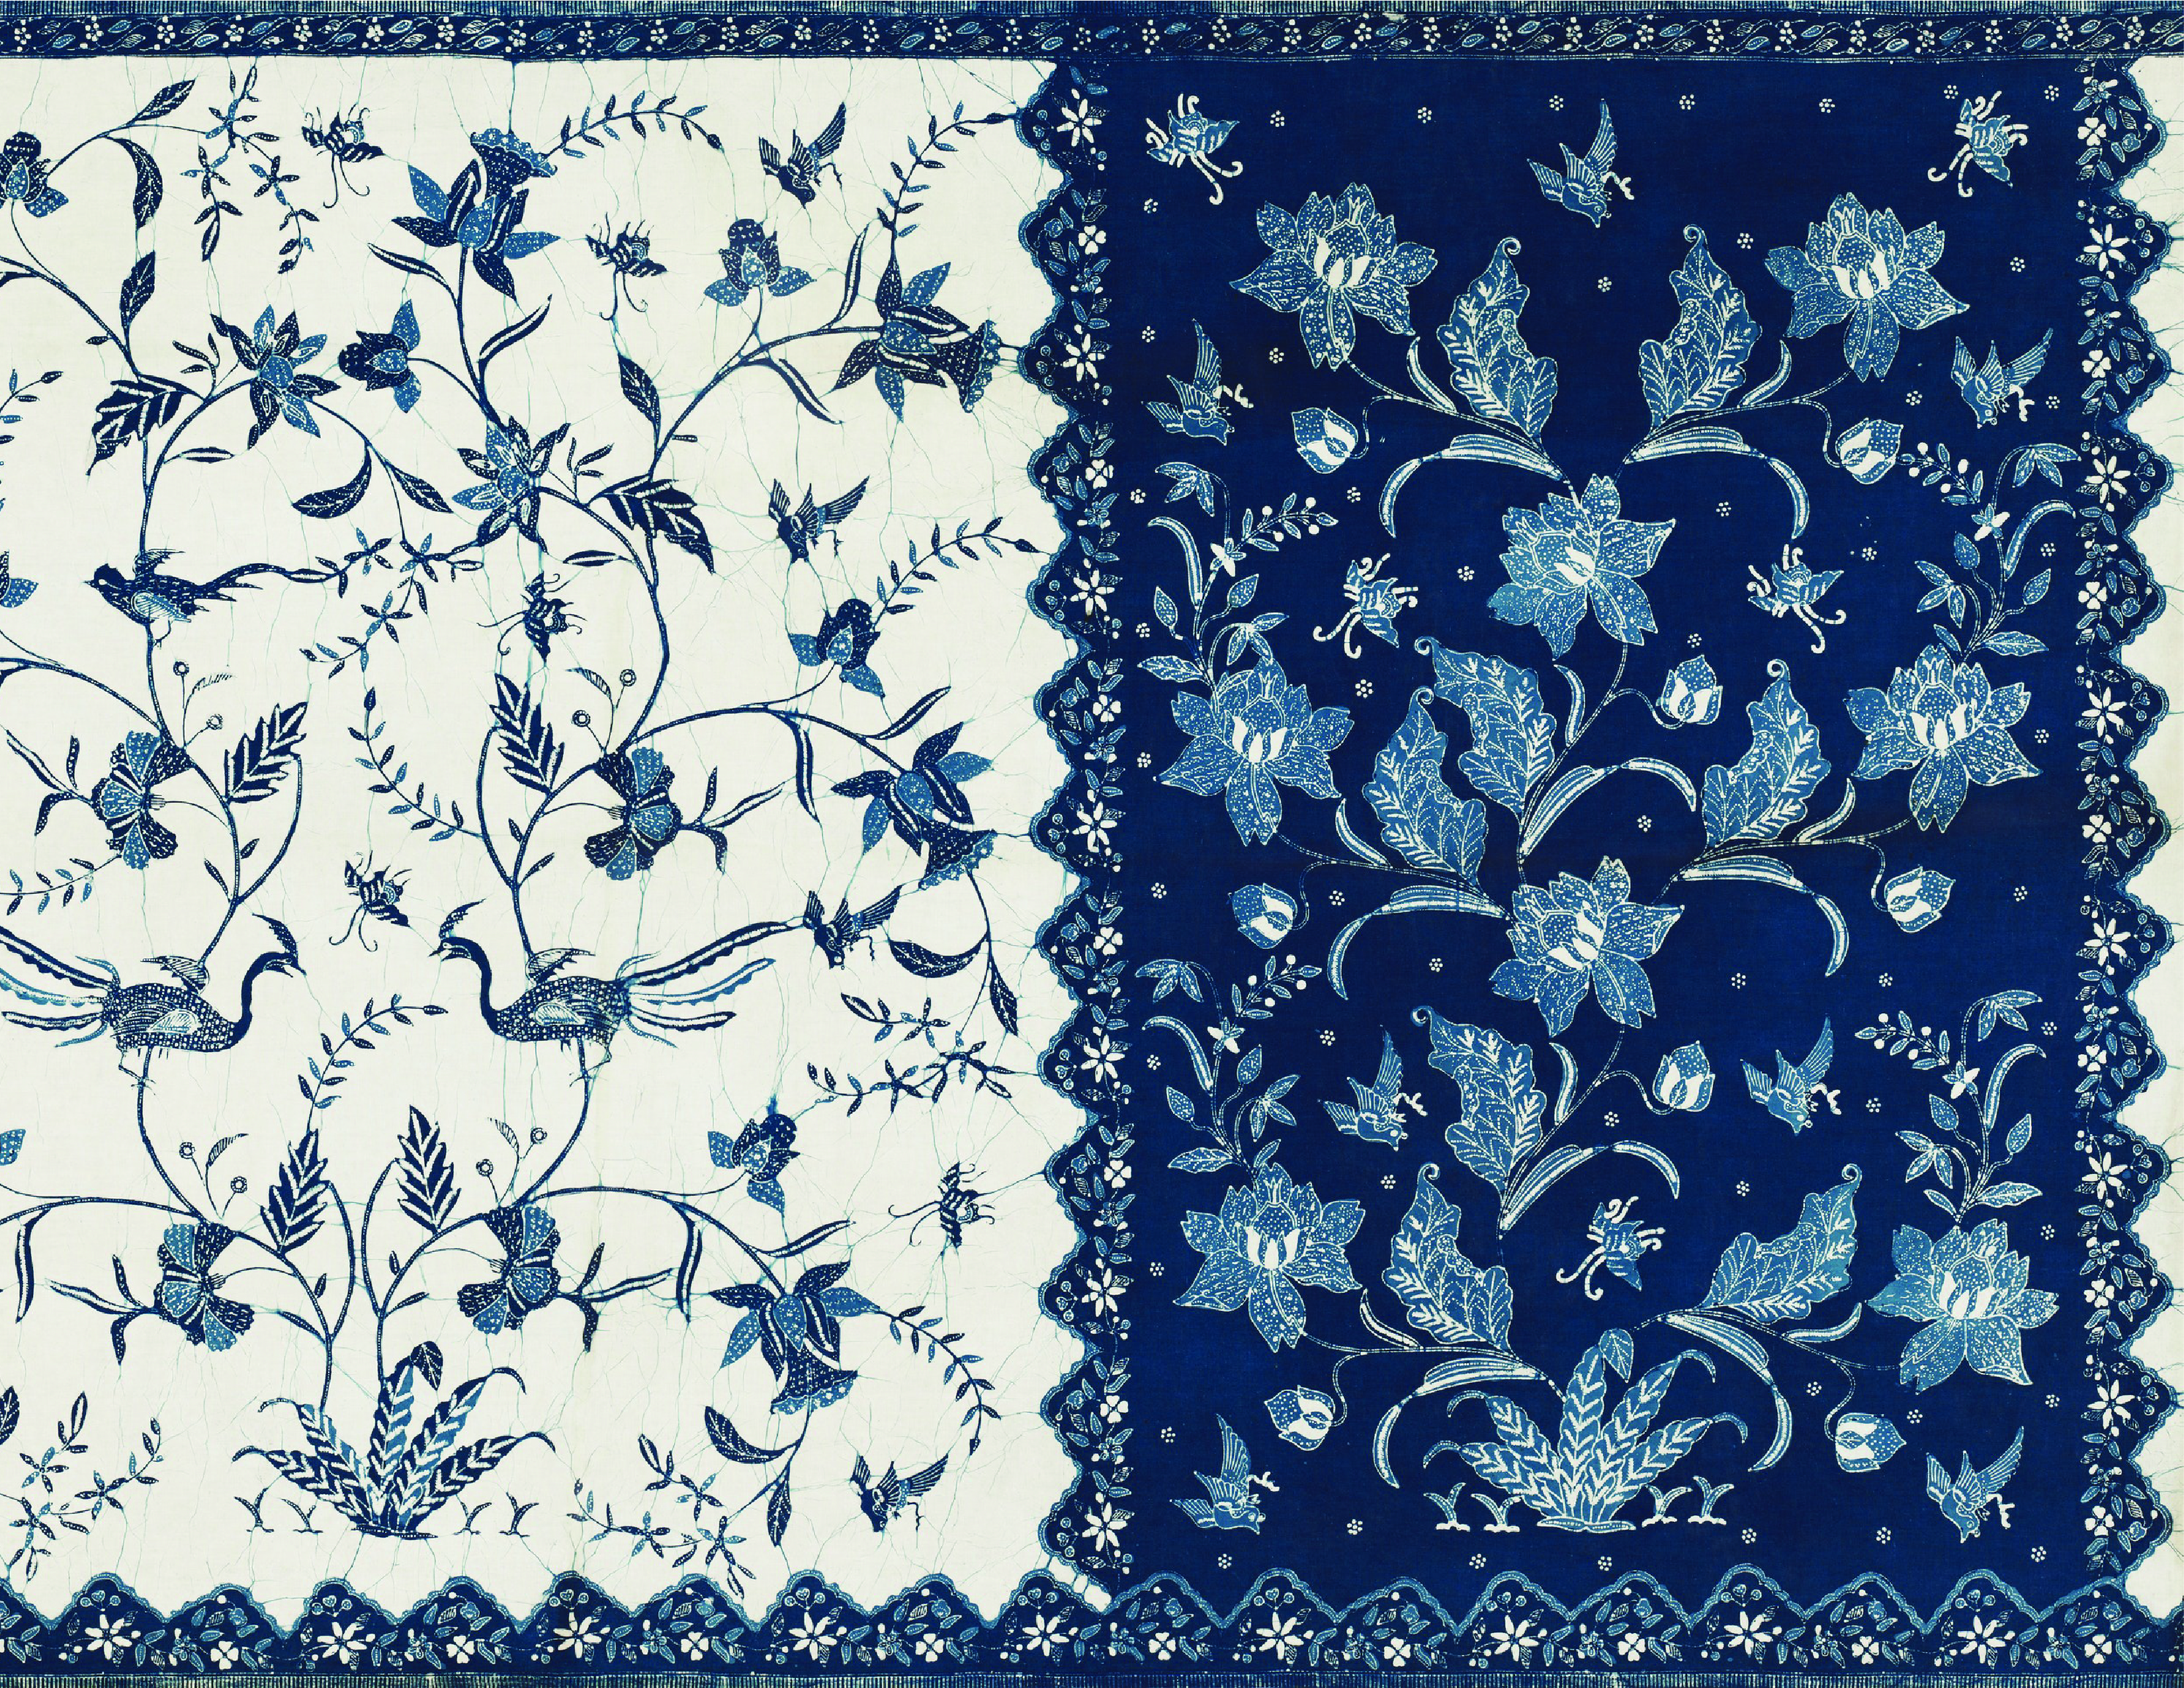 China Blue Asian Victorian Bird Flower Vintage Style Dollhouse Wallpaper Printable Cracked Old Floral